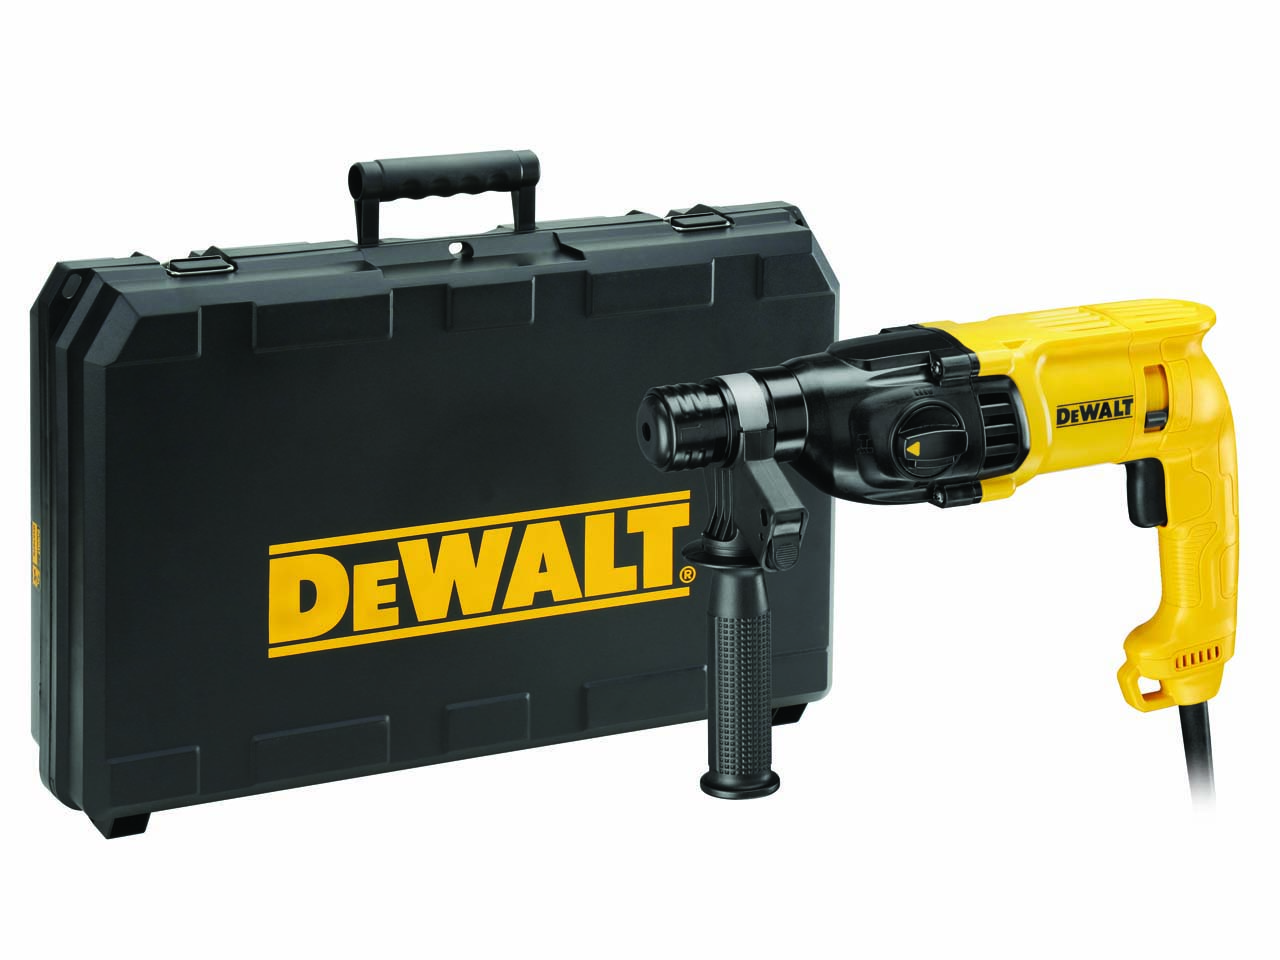 dewalt d25033k 240v sds 3 mode hammer drill 710w. Black Bedroom Furniture Sets. Home Design Ideas